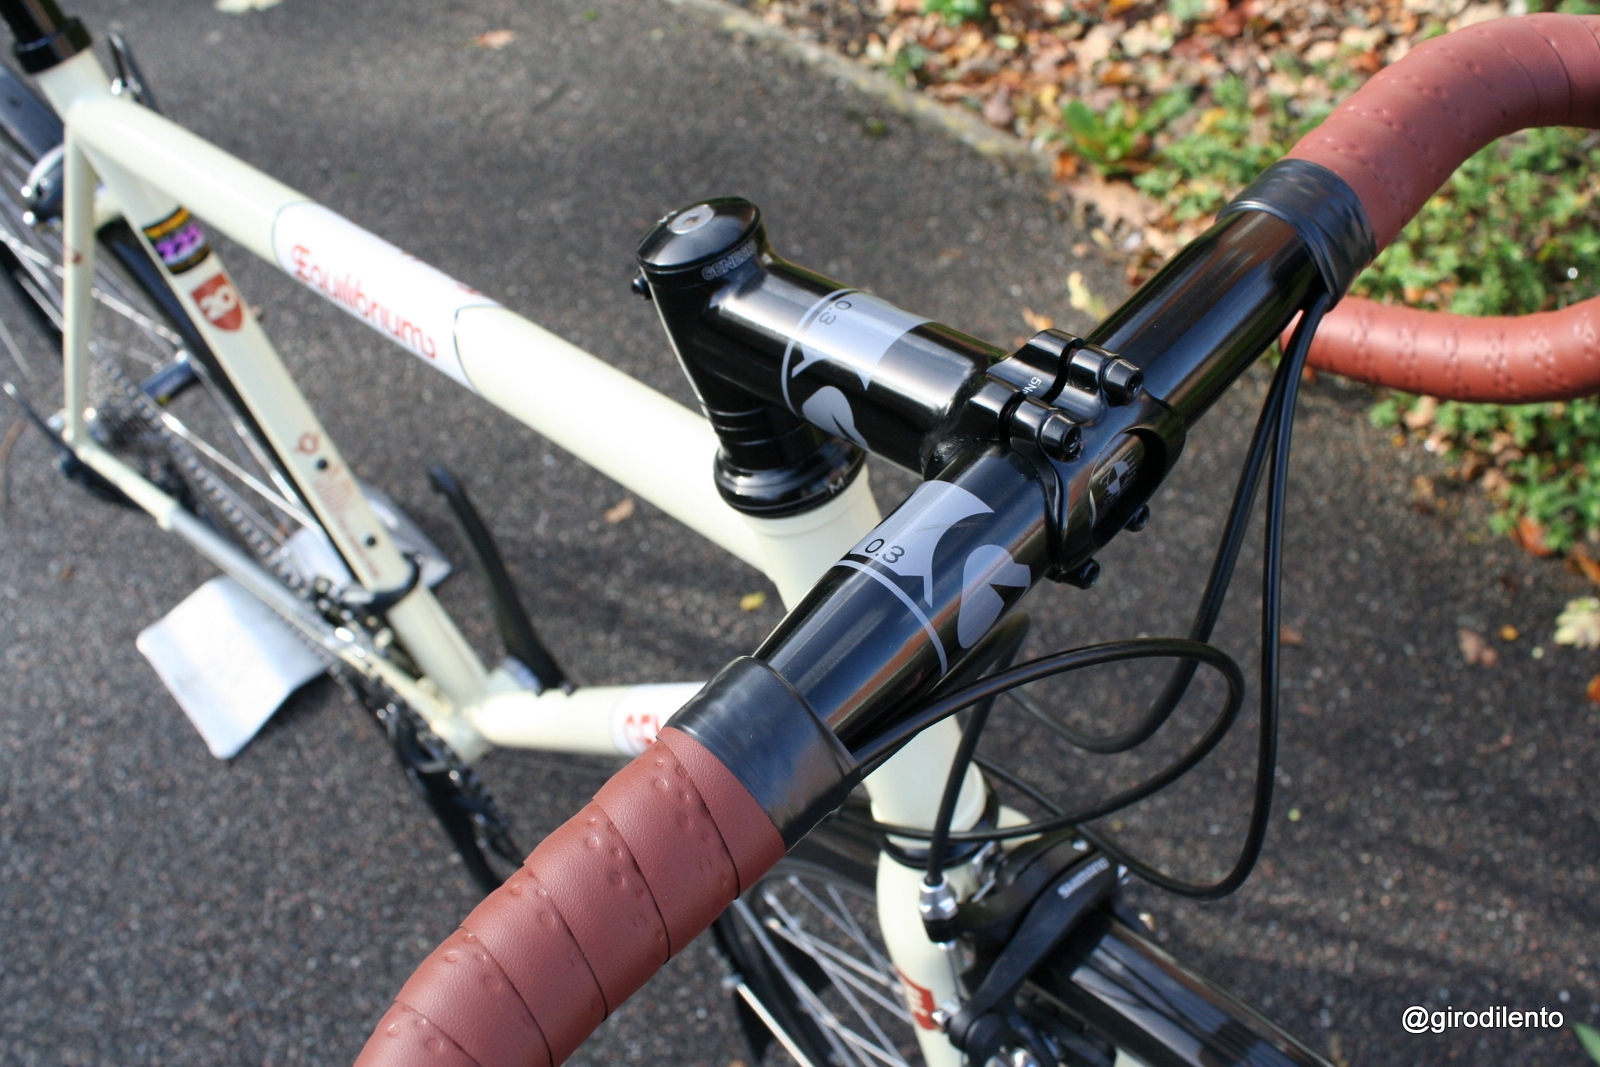 Genesis bars and stem look great on the bike and seem nice to ride so far